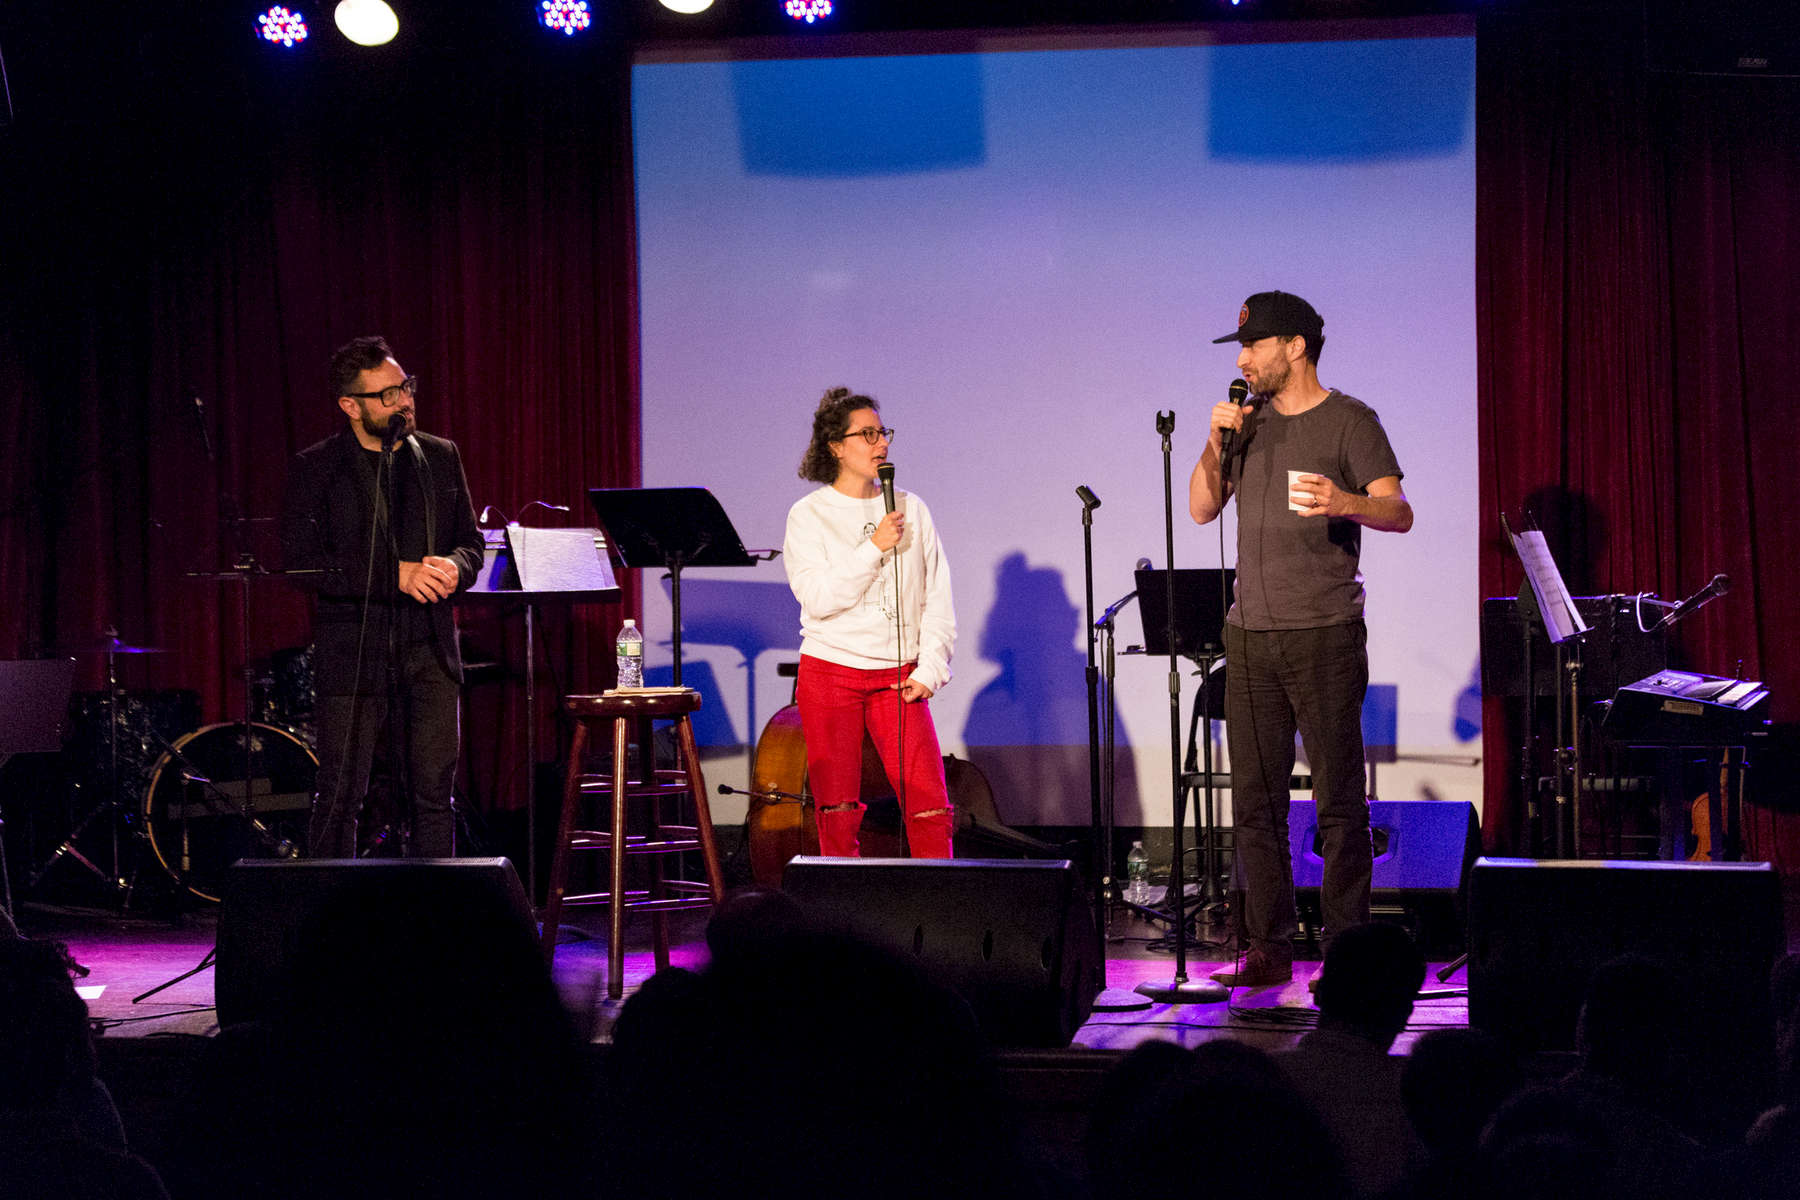 eliot glazer, jon glaser, and ilana glazer